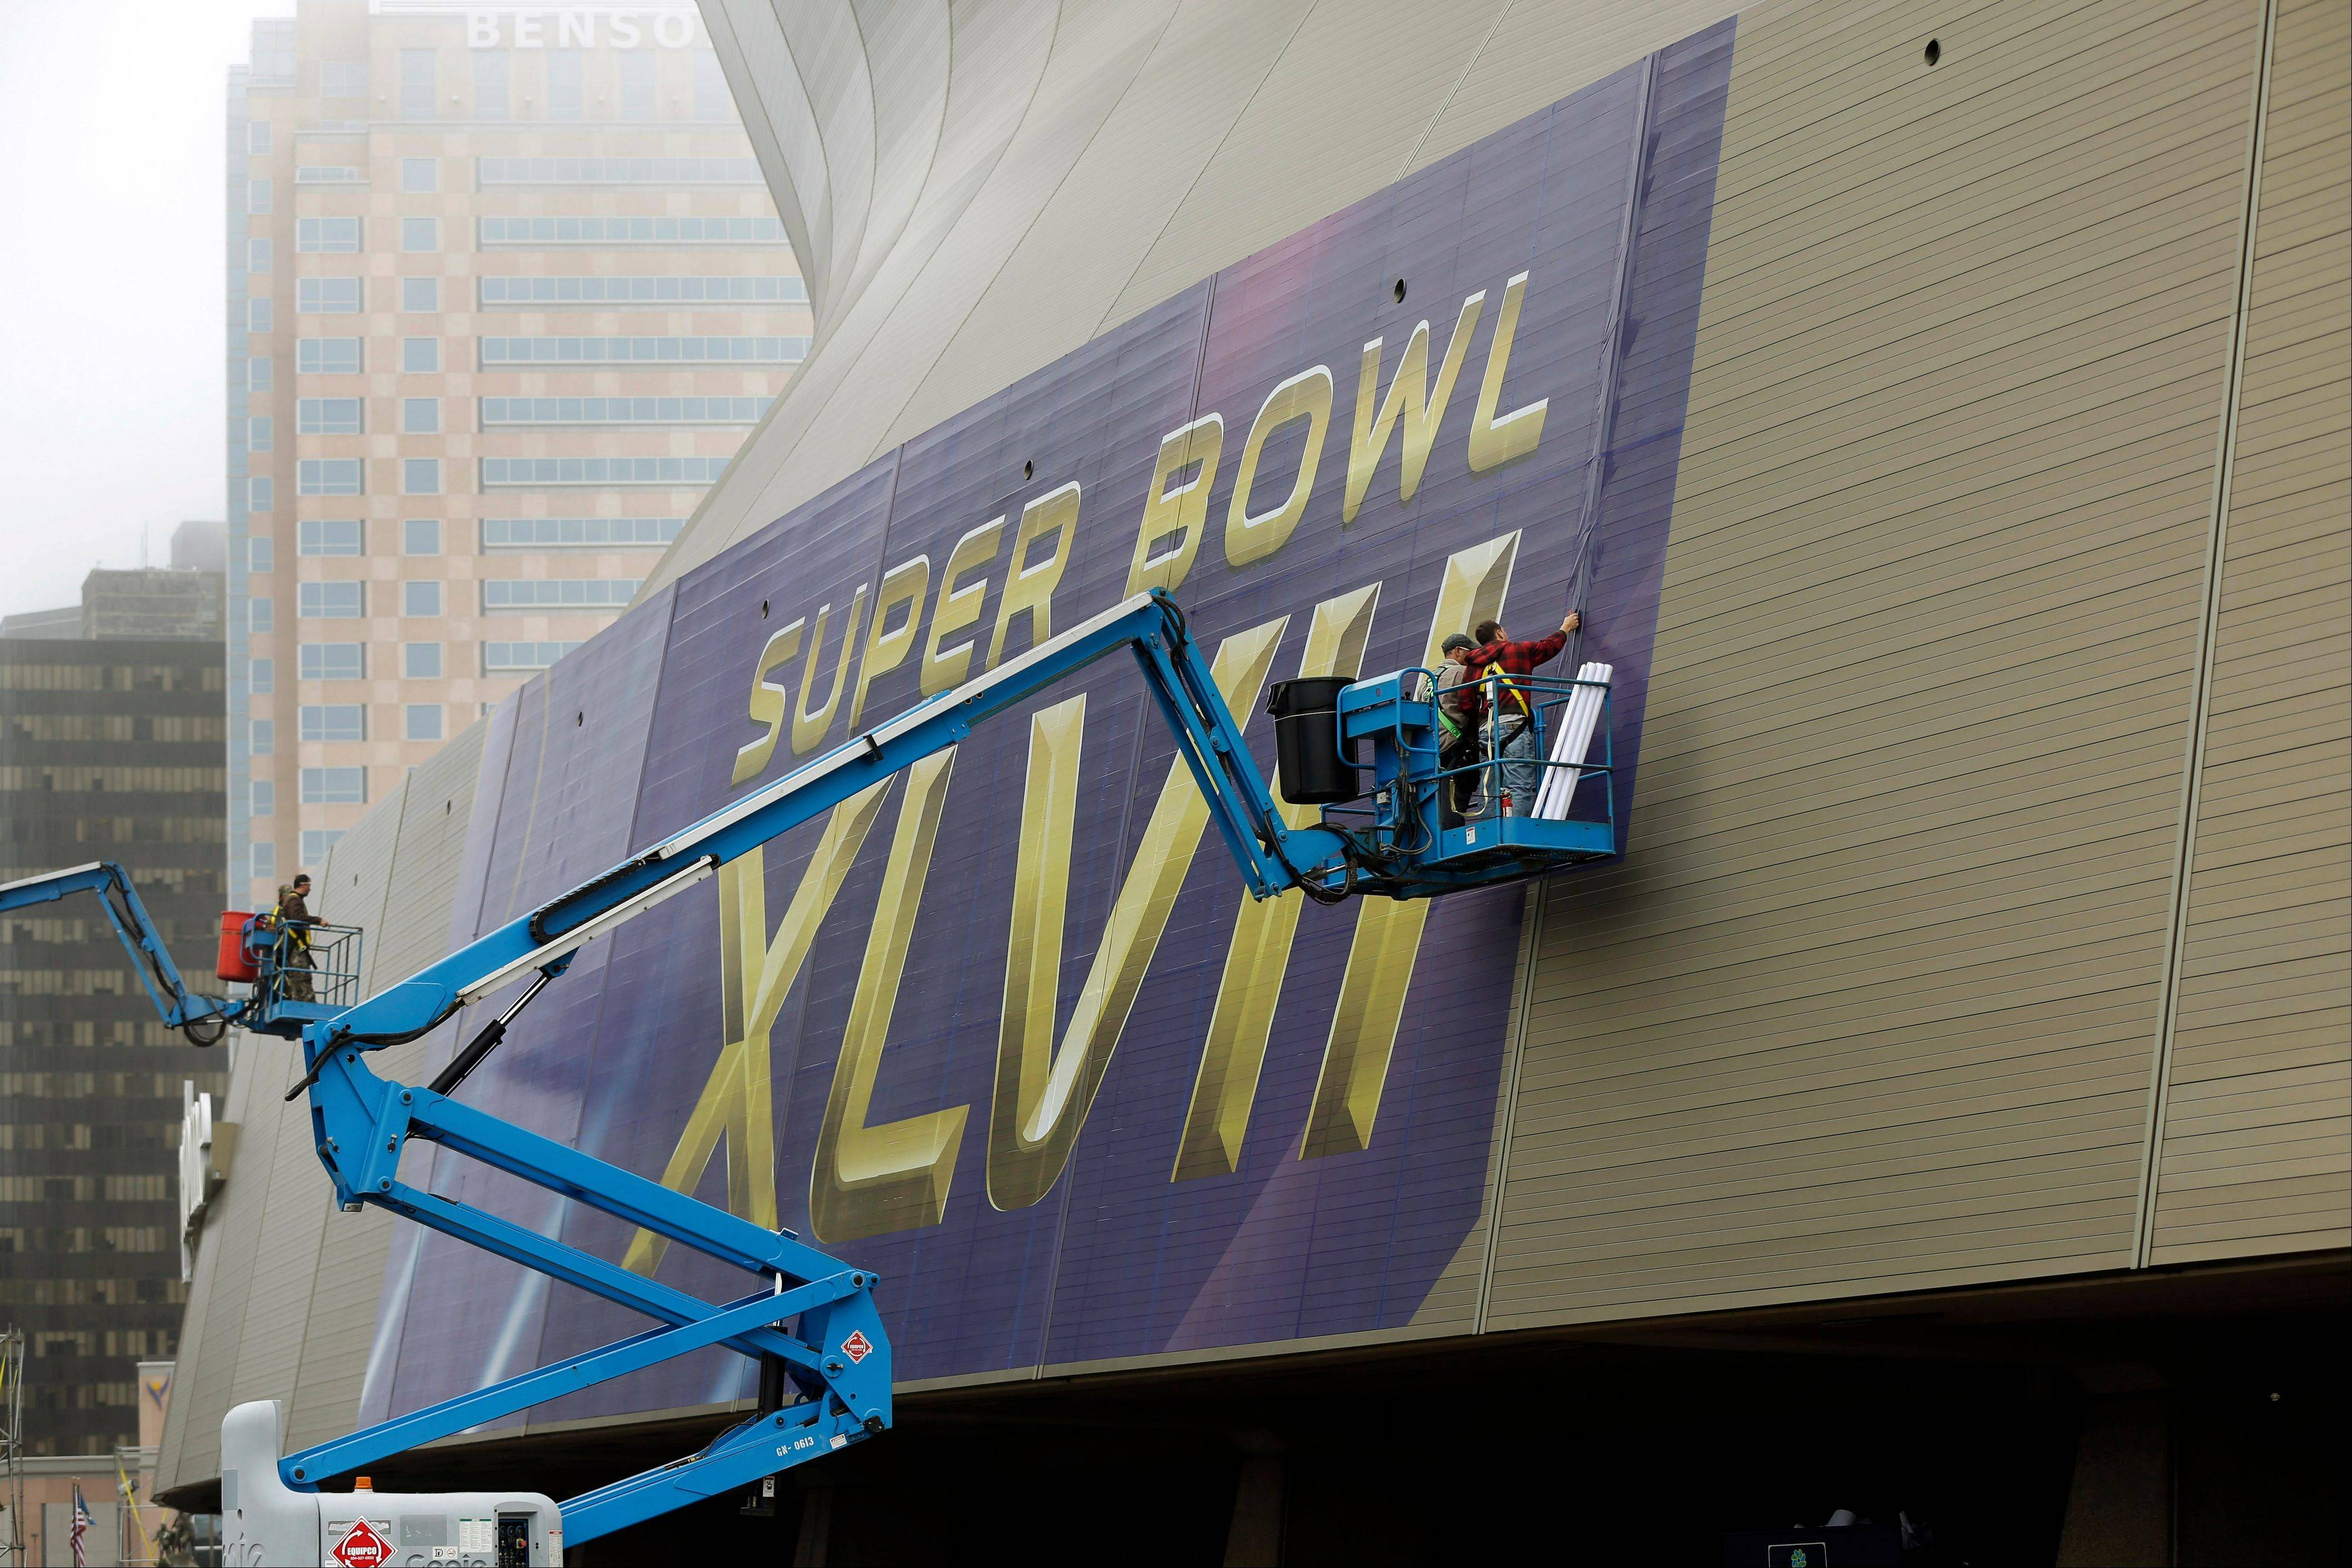 The Superdome in New Orleans will host Super Bowl XLVII on Feb. 3 with the Baltimore Ravens playing the San Francisco 49ers.